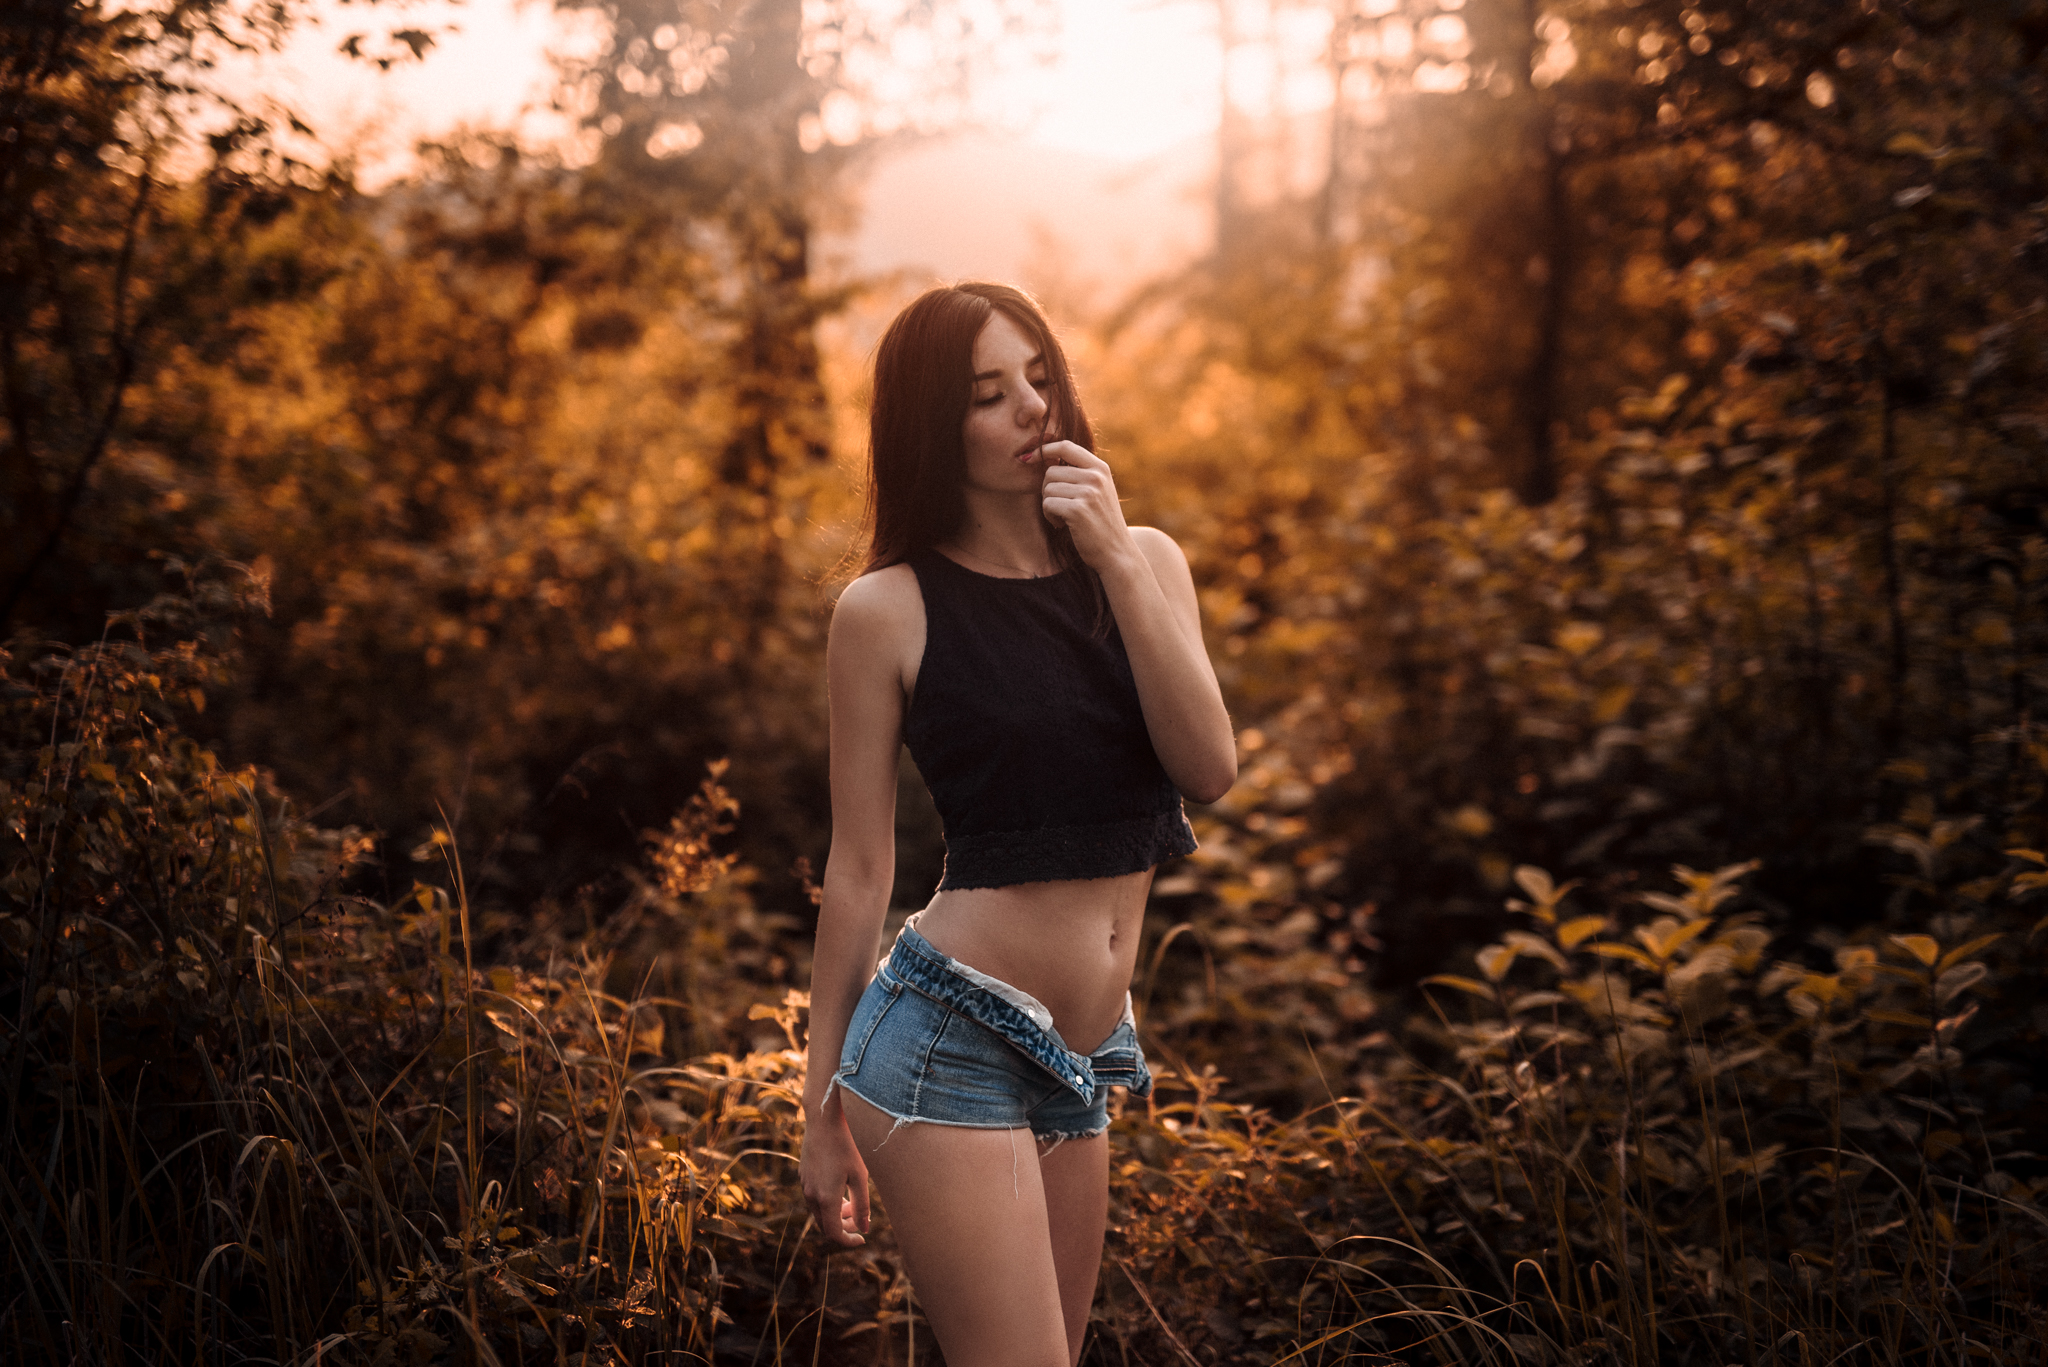 sunset, západ slnka, dievča, girl, art, emotion, feel, glamour, body, sexy, nature, summer, hot, spring, gentle, fine